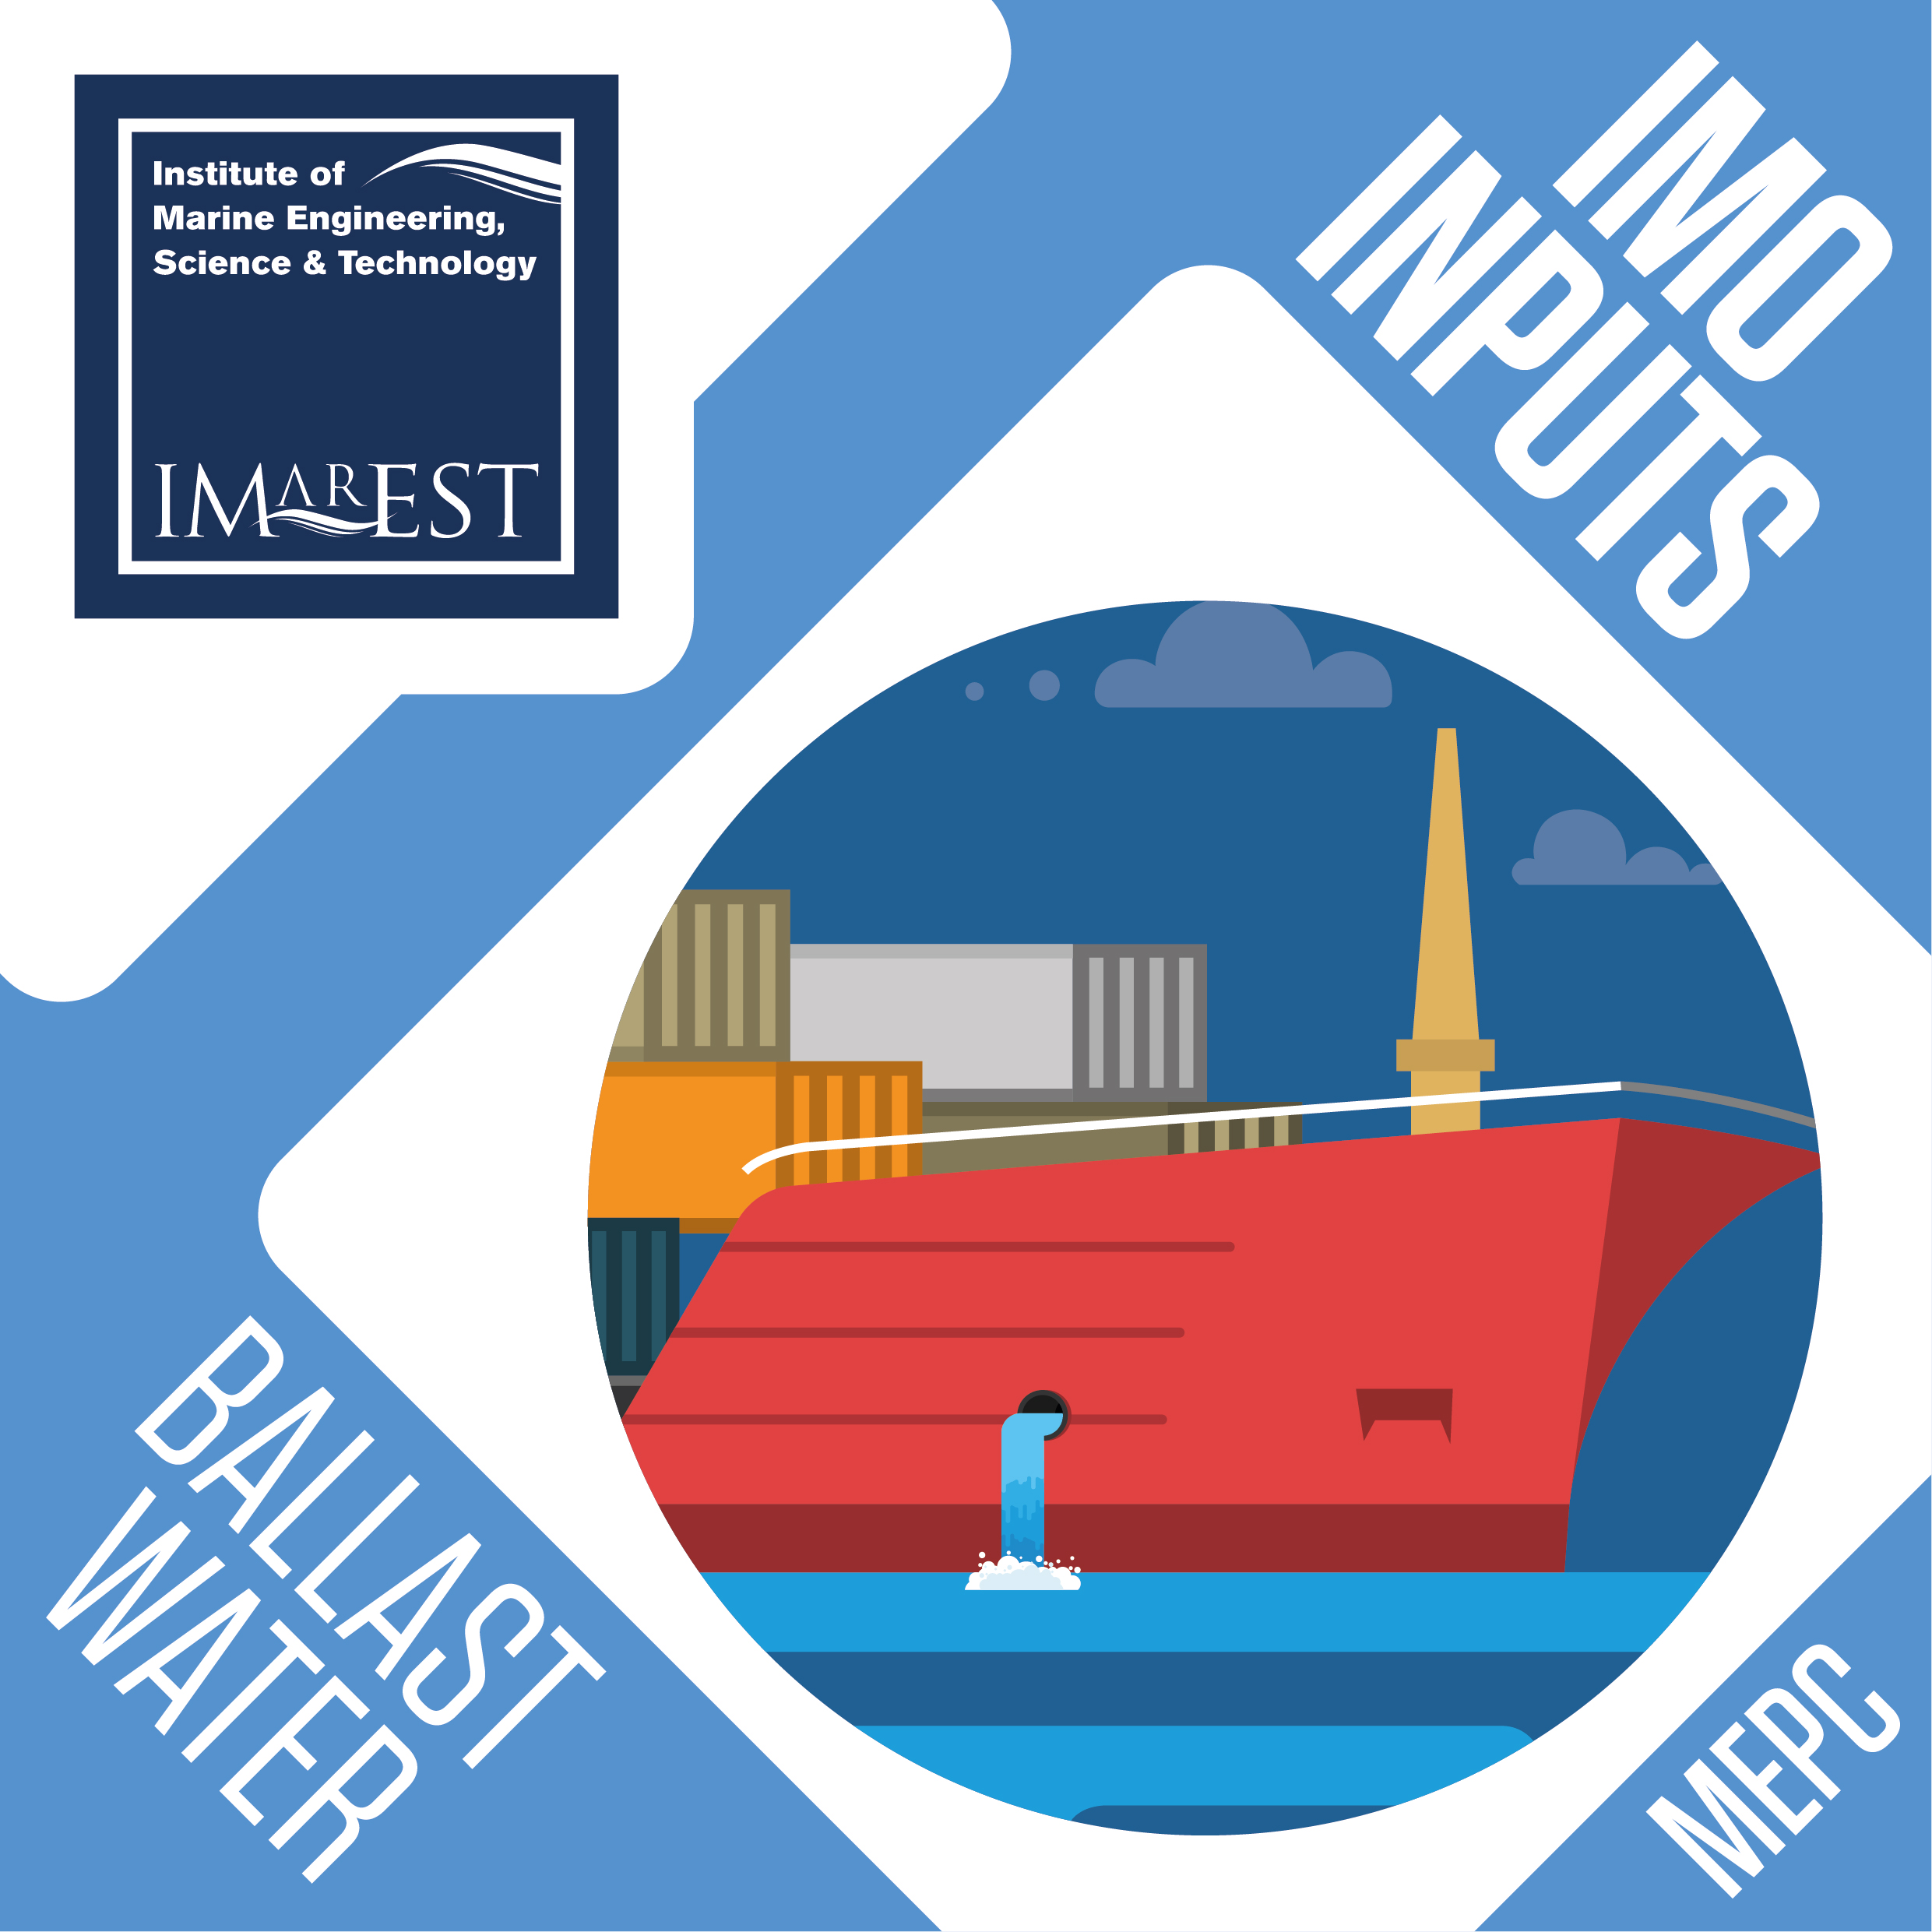 IMO inputs 01 Ballast Water